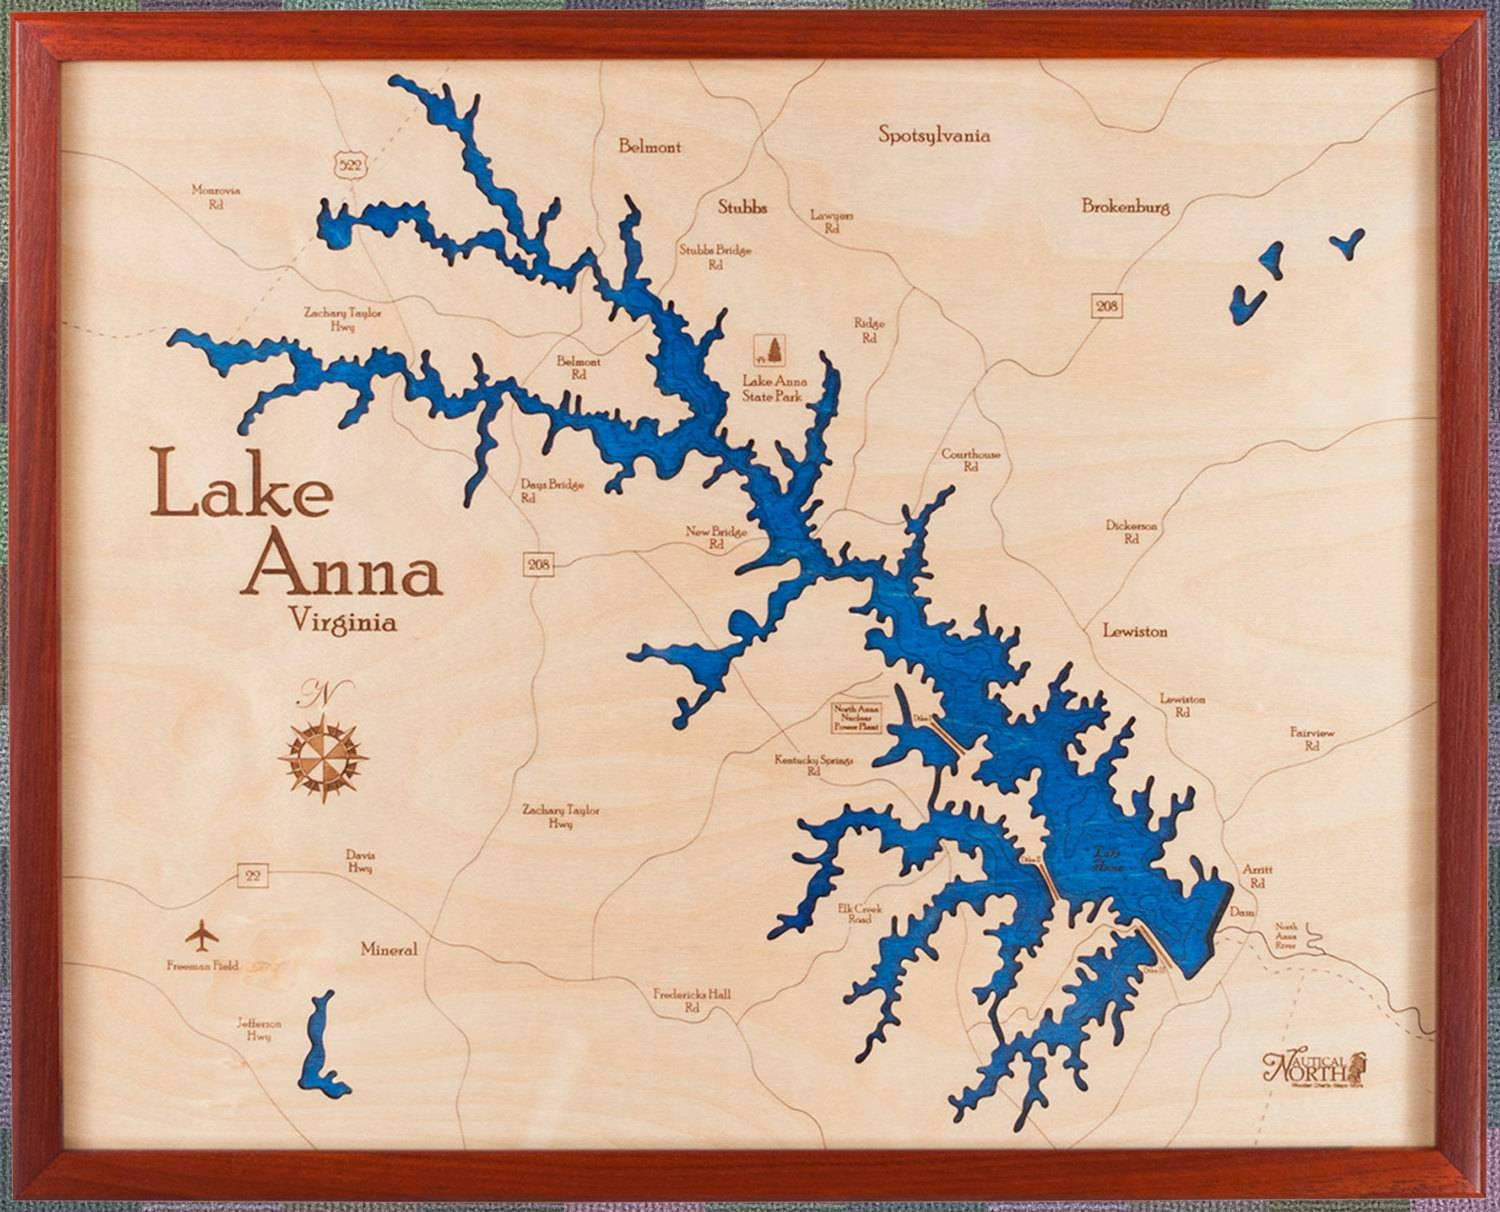 Lake Anna Virginia 16X20 3D Wall Chart Within Most Recent Lake Map Wall Art (View 5 of 20)